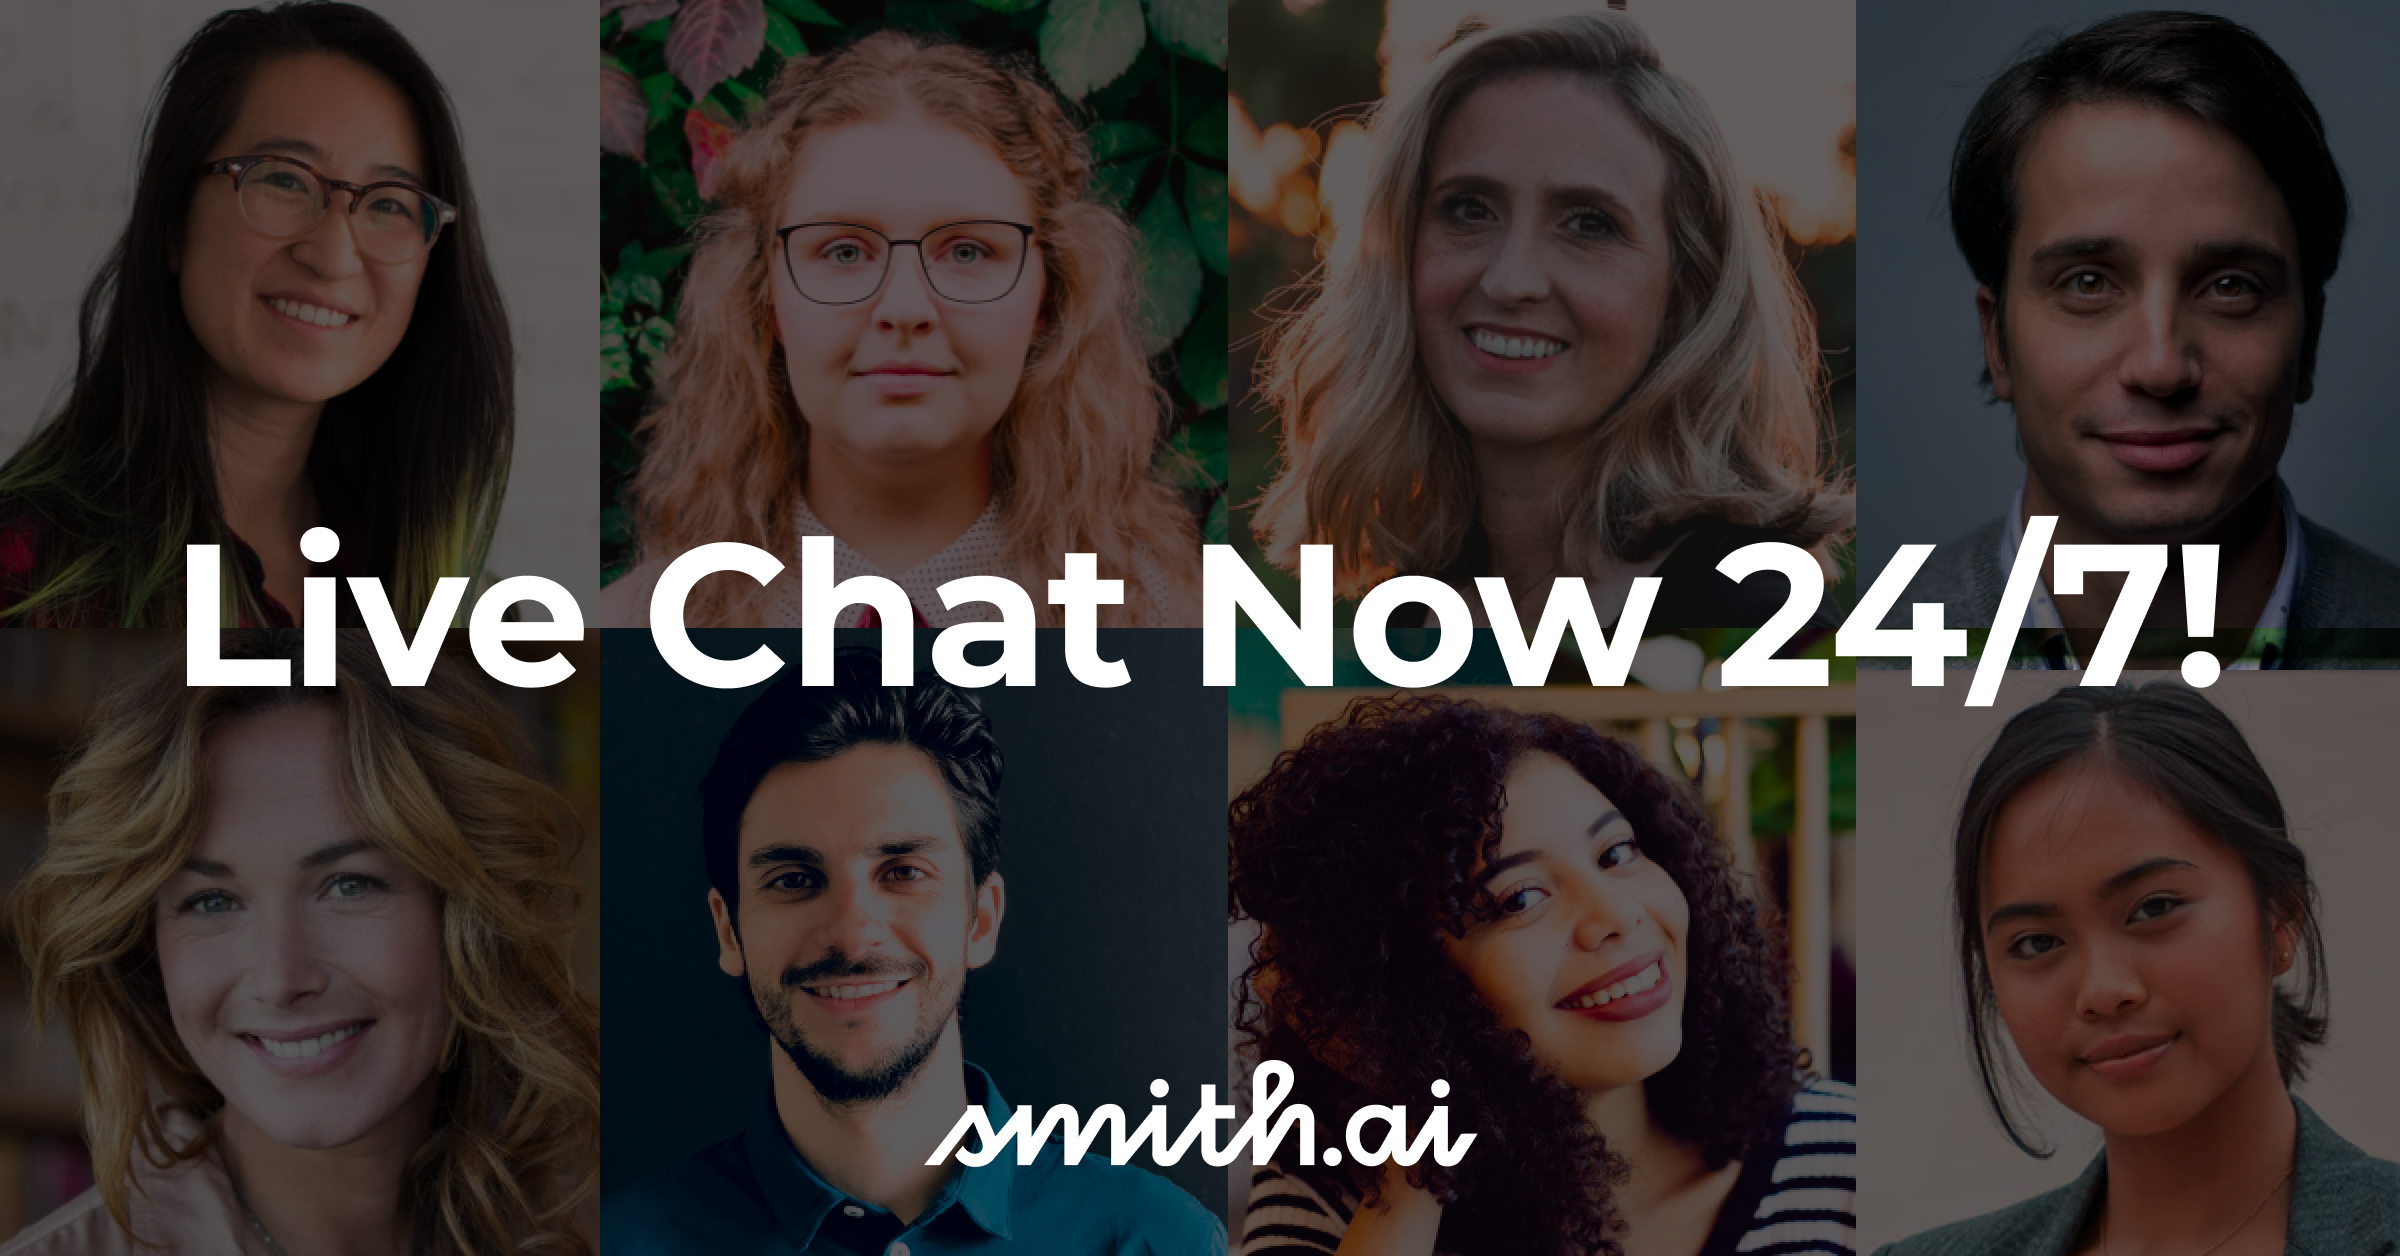 Smith.ai Live Chat Now Staffed 24/7!